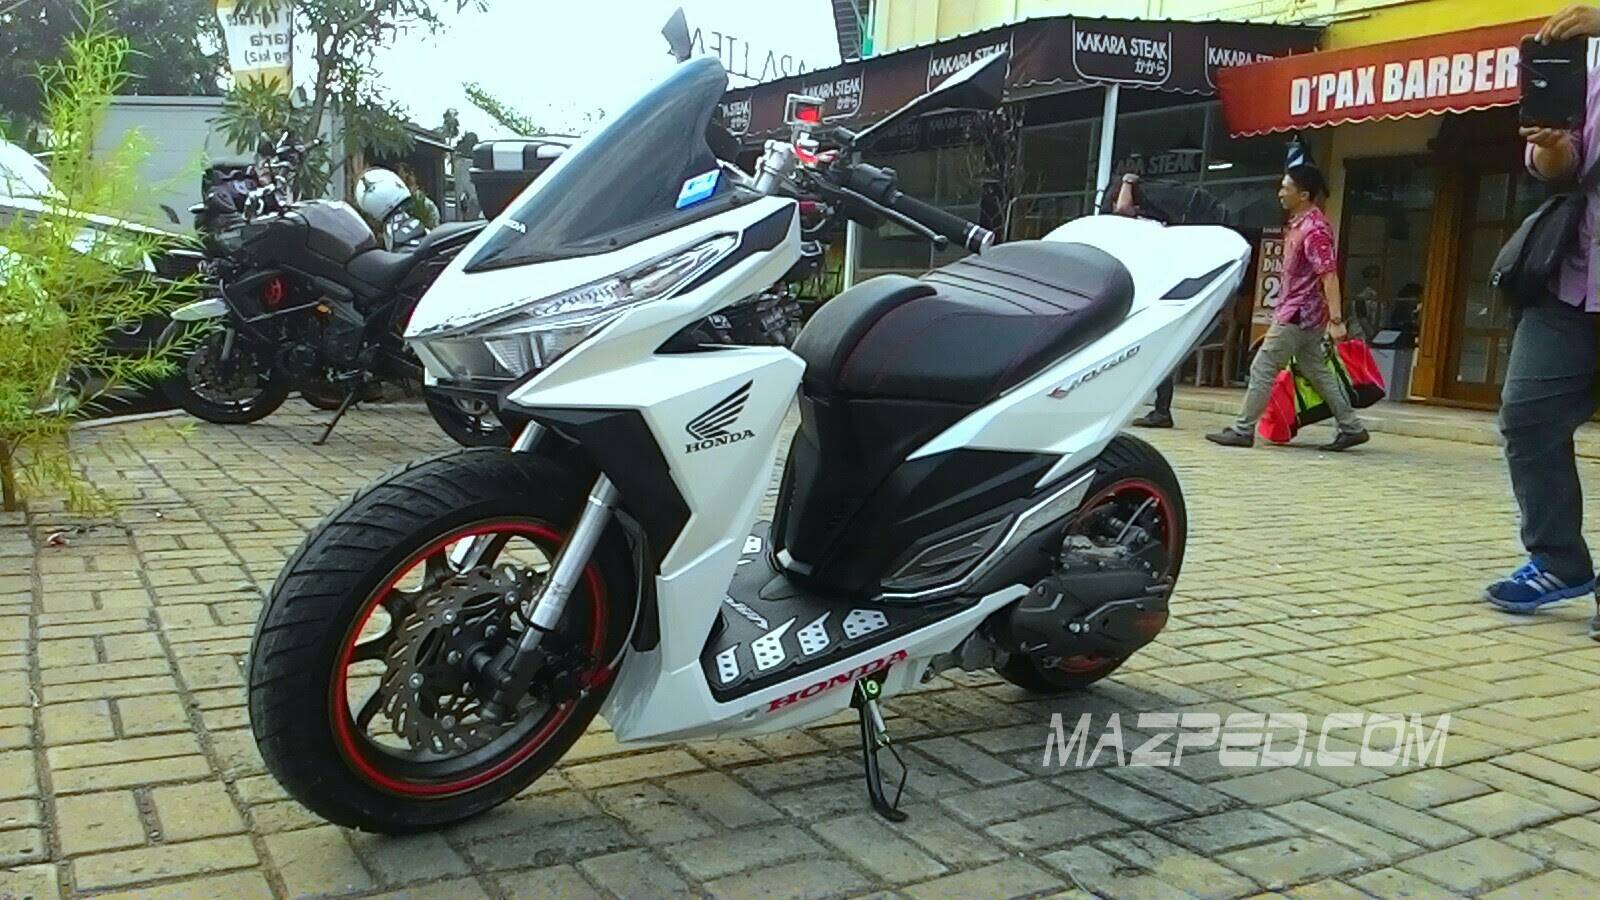 Modifikasi Vario New 150 Kumpulan Modifikasi Motor Vario